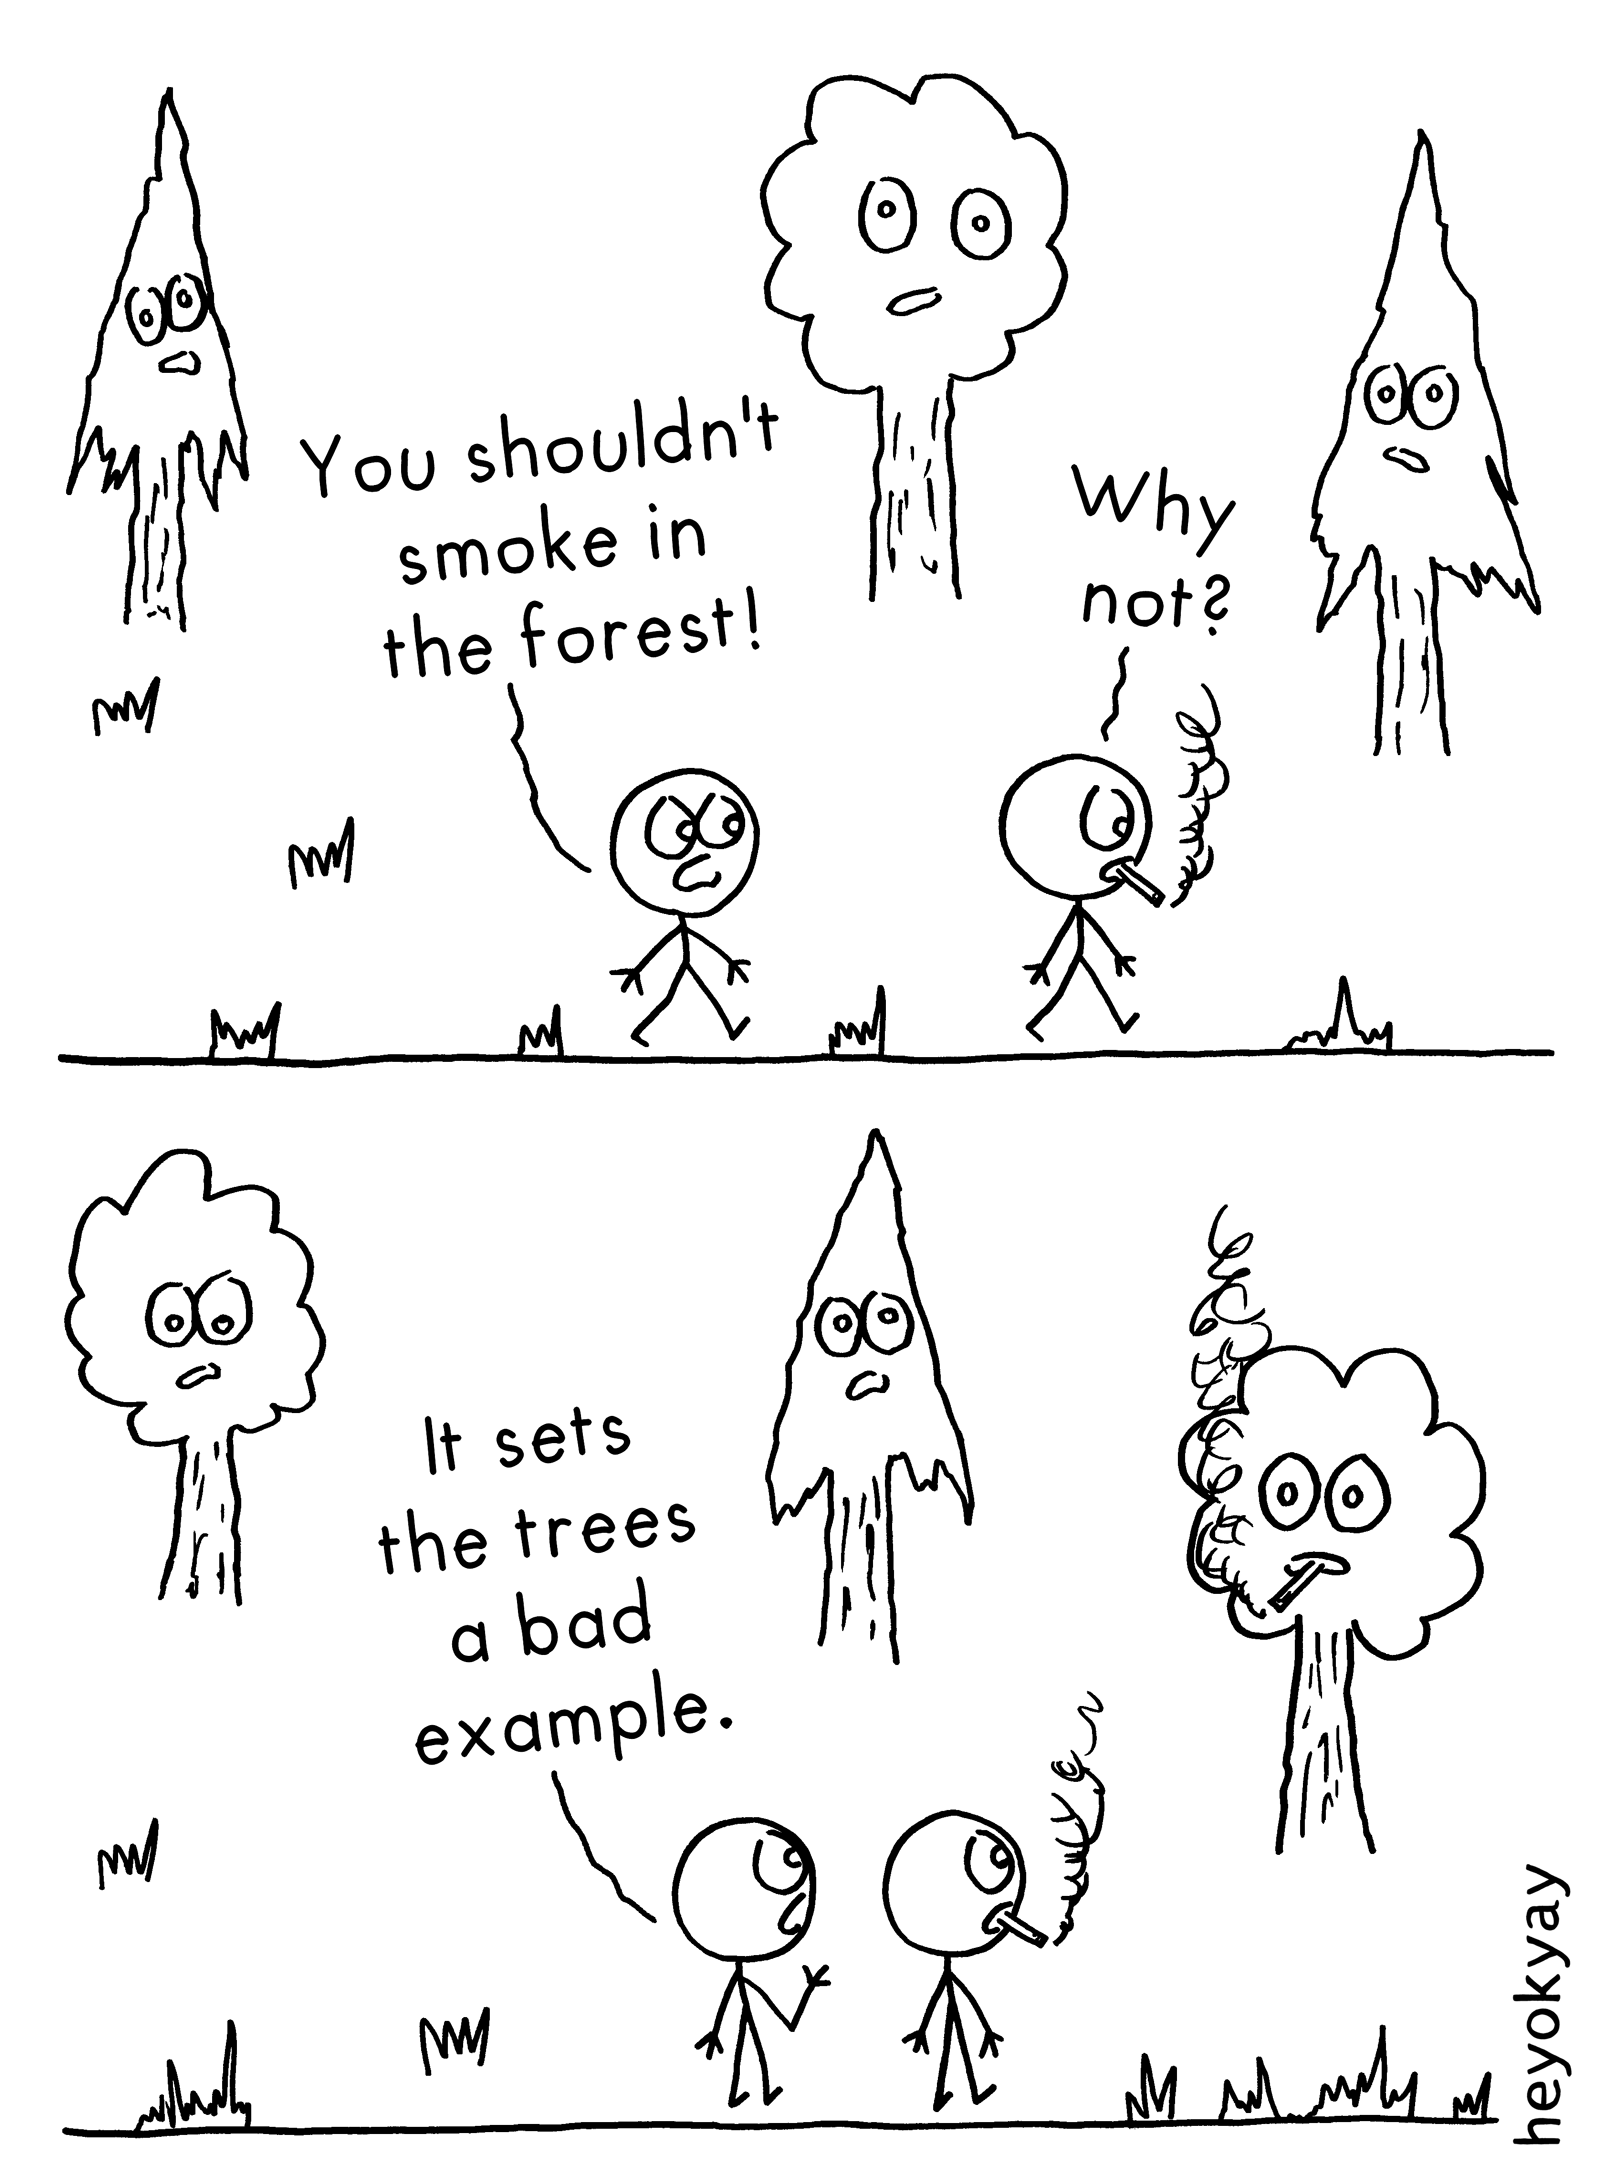 In The Forest heyokyay comic